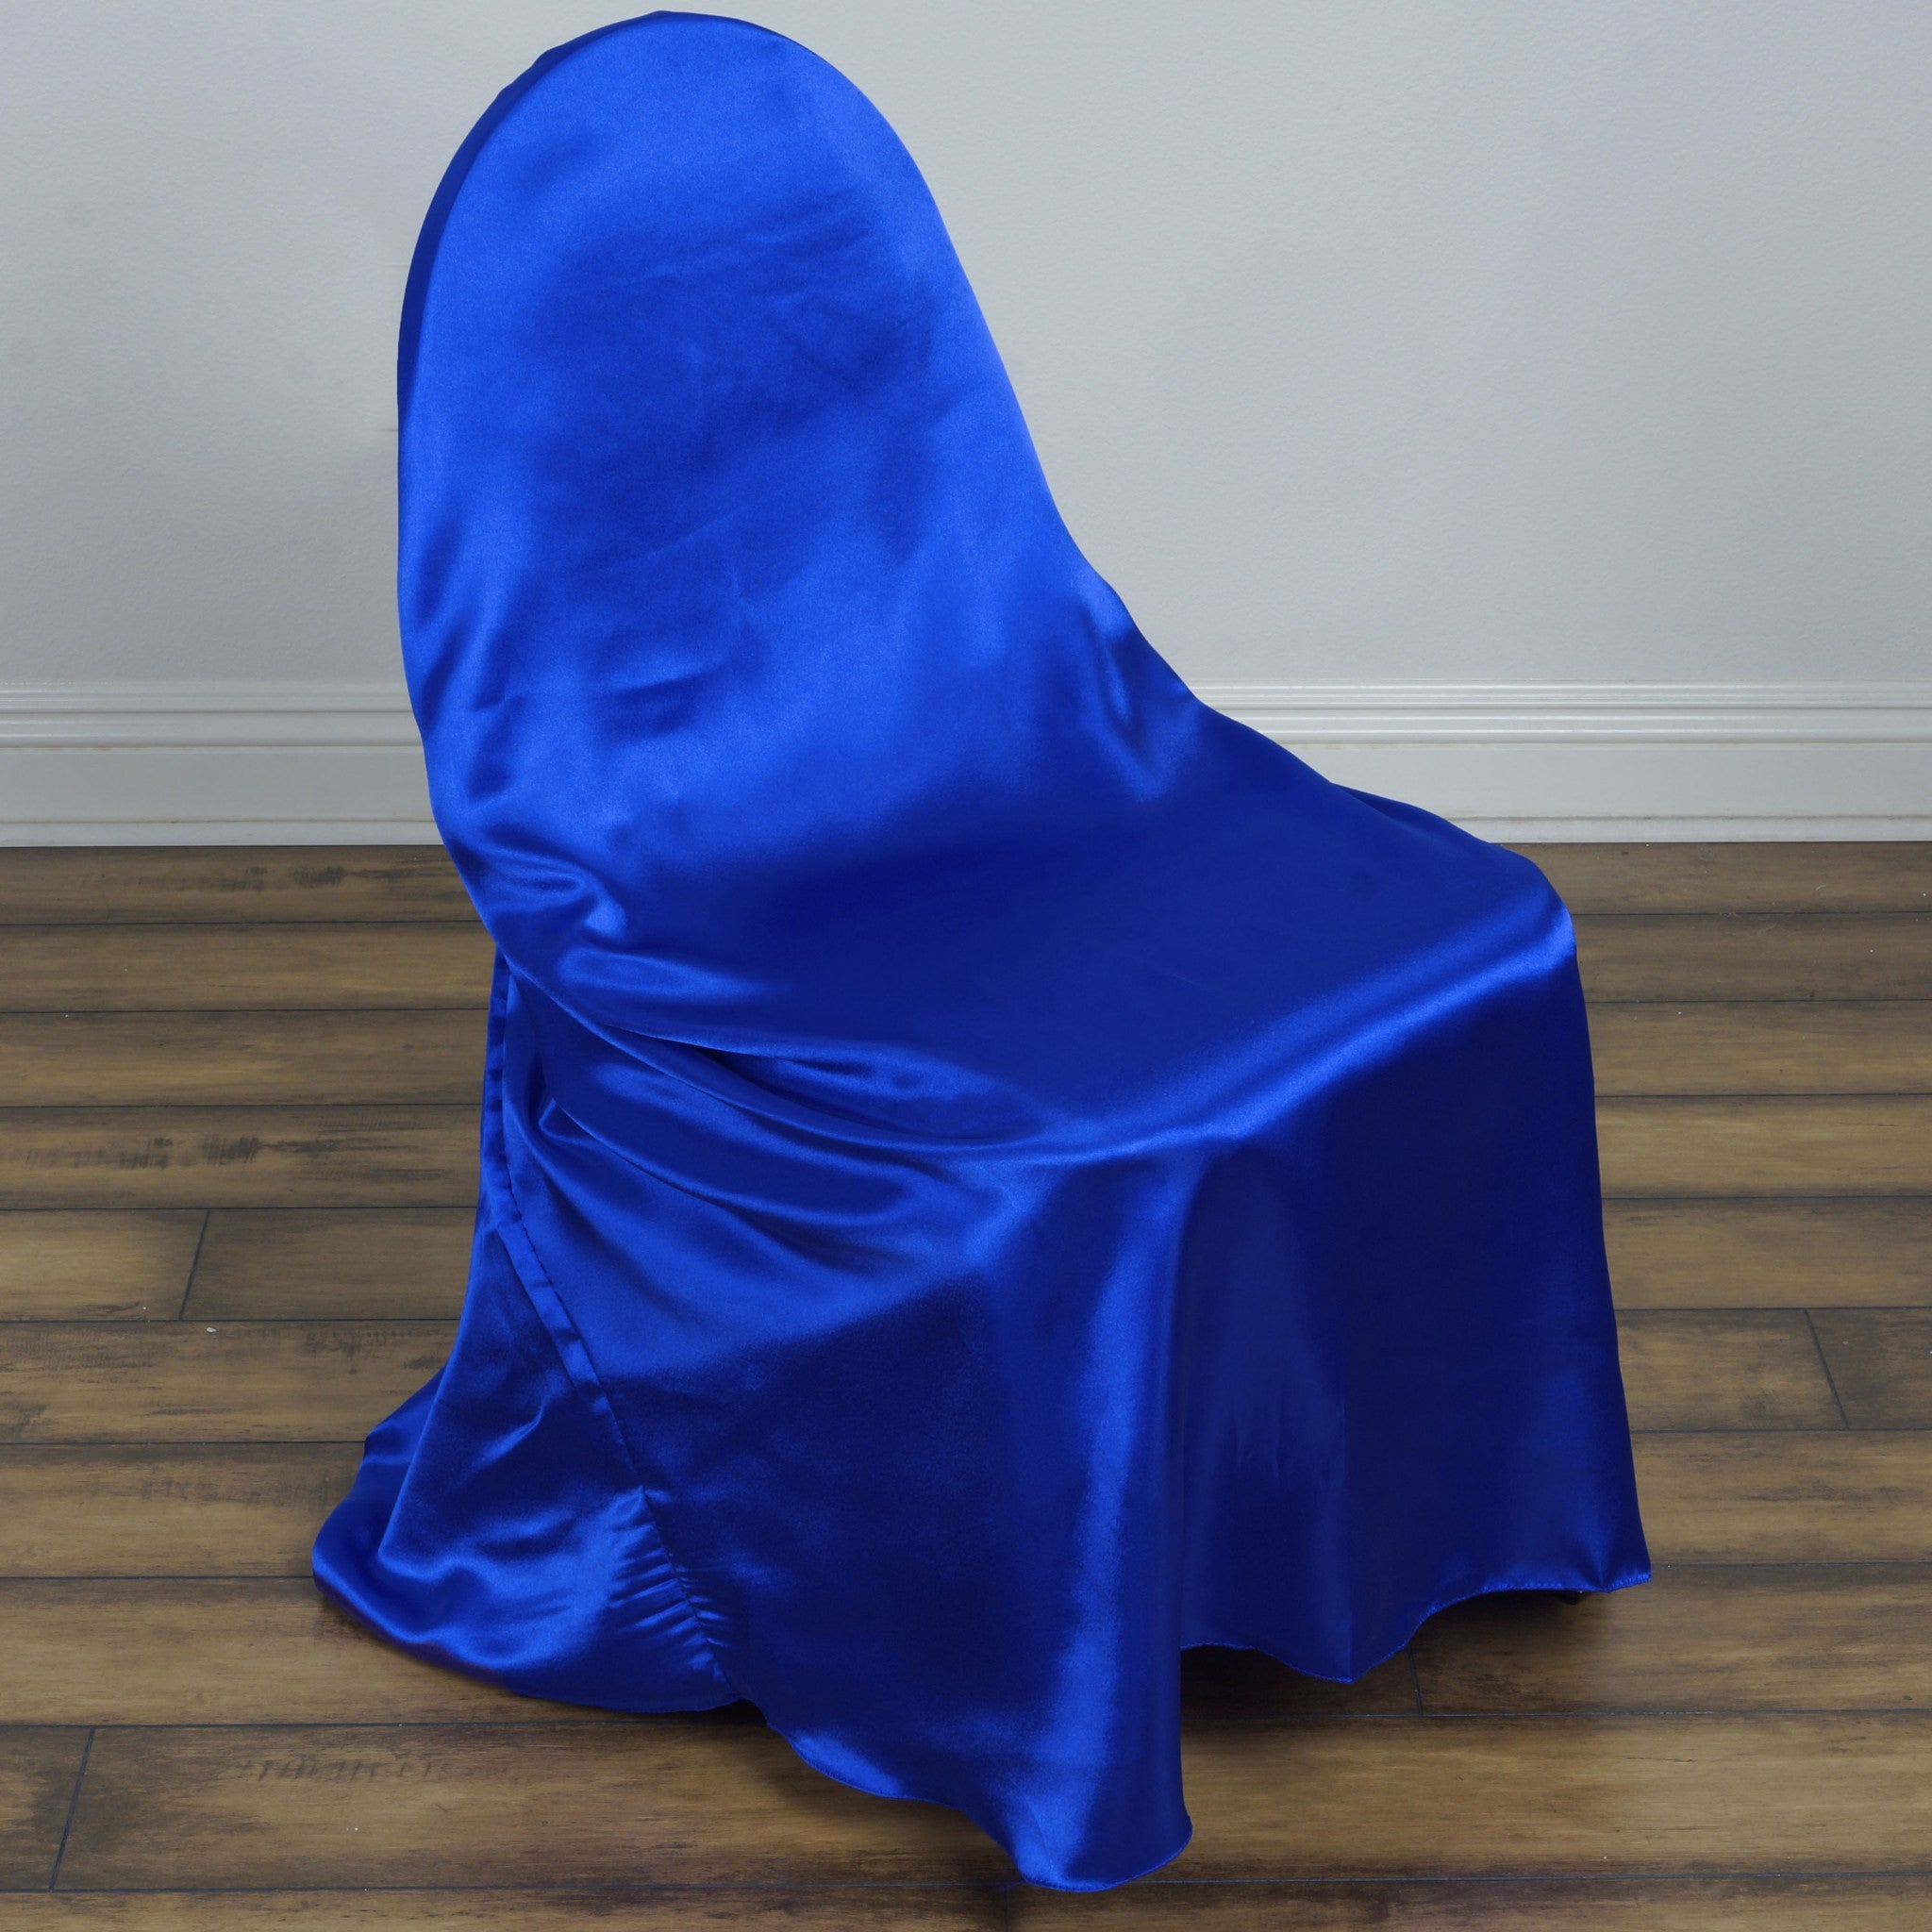 Universal Satin Chair Cover Decor - Royal Blue | eFavorMart